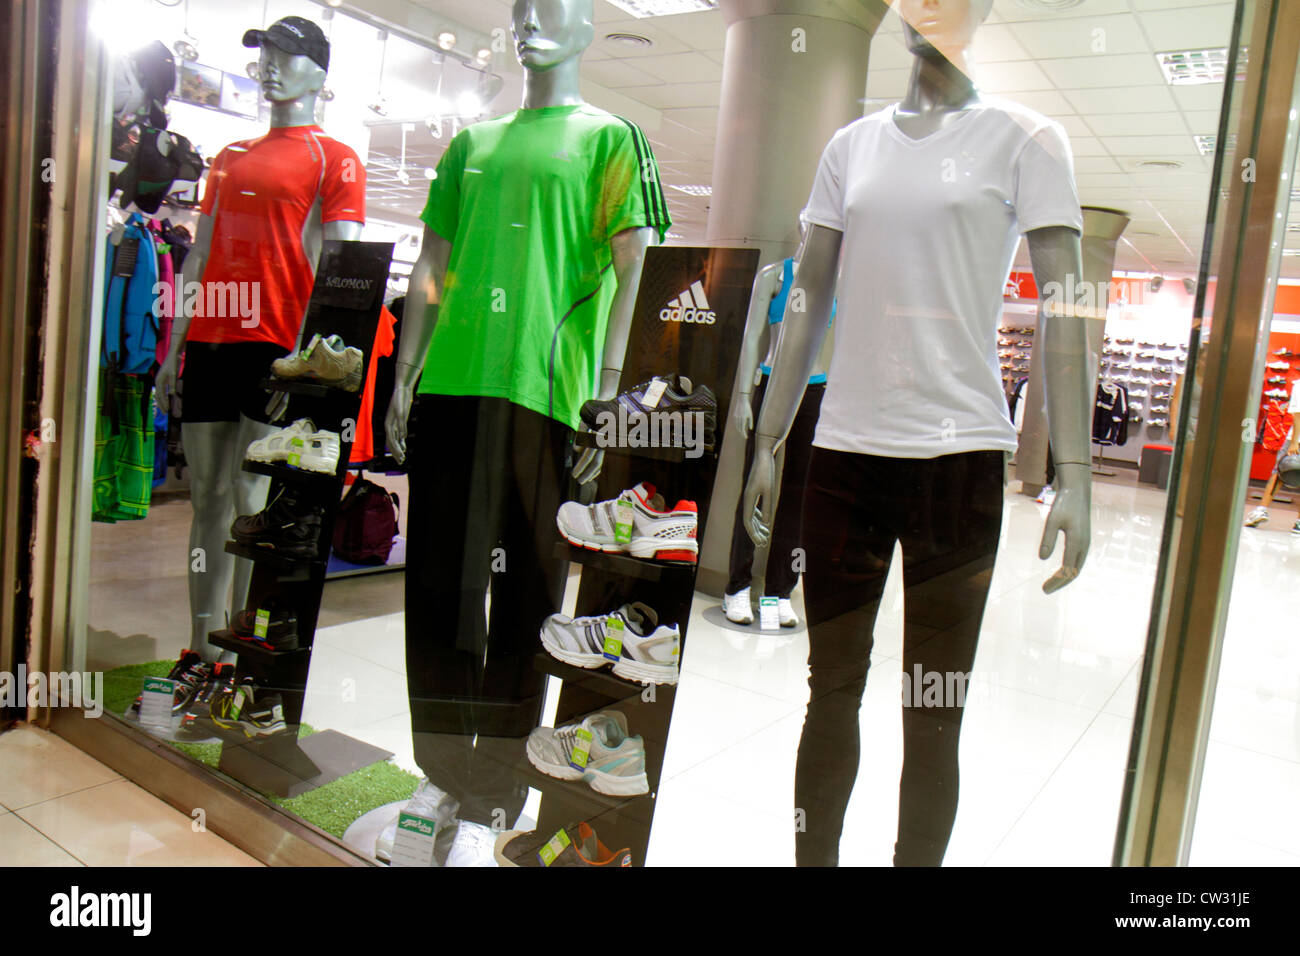 Mendoza Argentina Villa Nueva Mendoza Plaza Shopping mall store business  shopping center centre sportswear clothing clothes appa 5779dc0013f